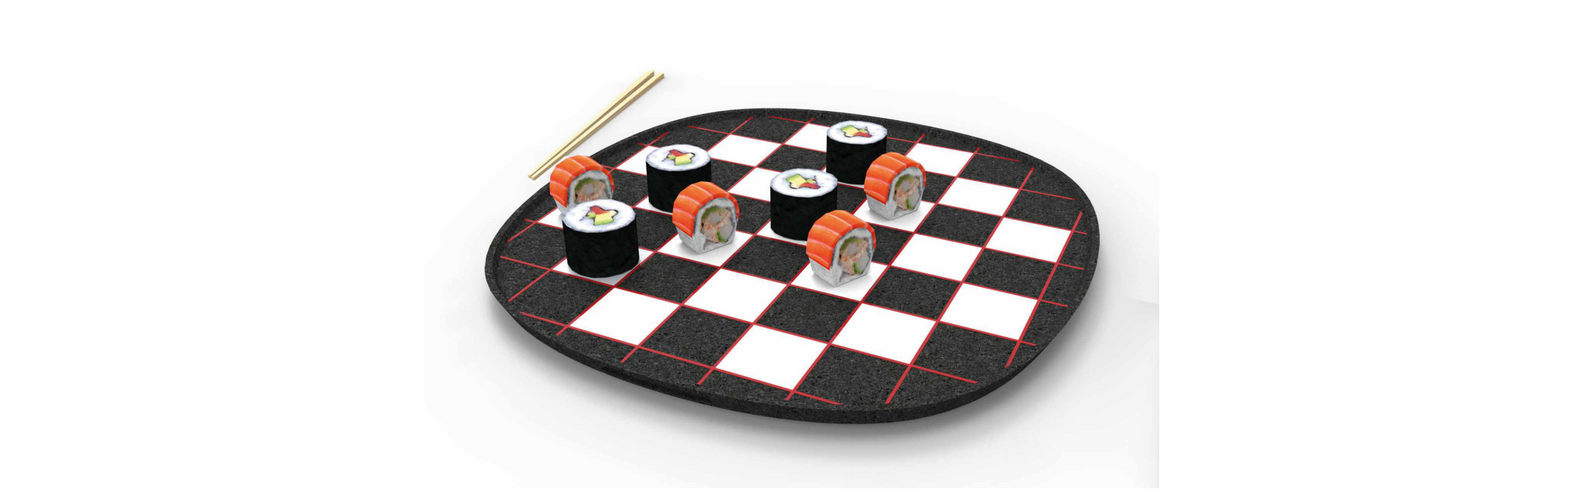 Piatto Play Sushi - Opus Mosaici